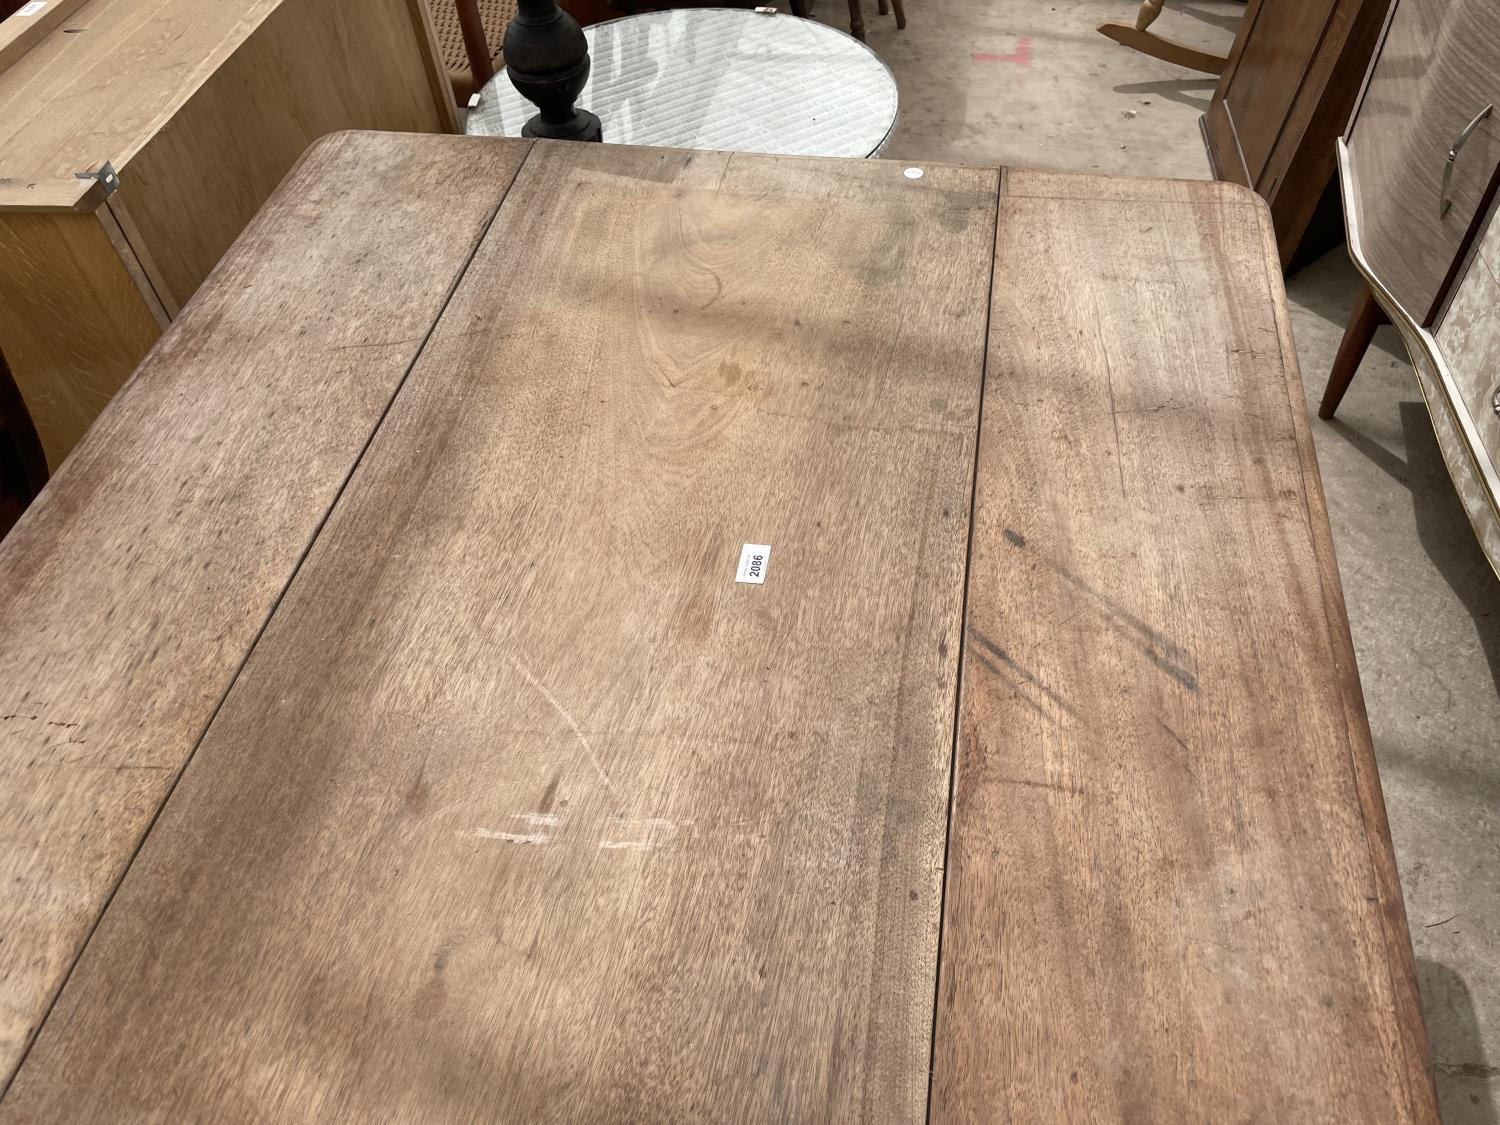 A VICTORIAN MAHOGANY PEMBROKE TABLE ON TURNED LEGS - Image 2 of 4